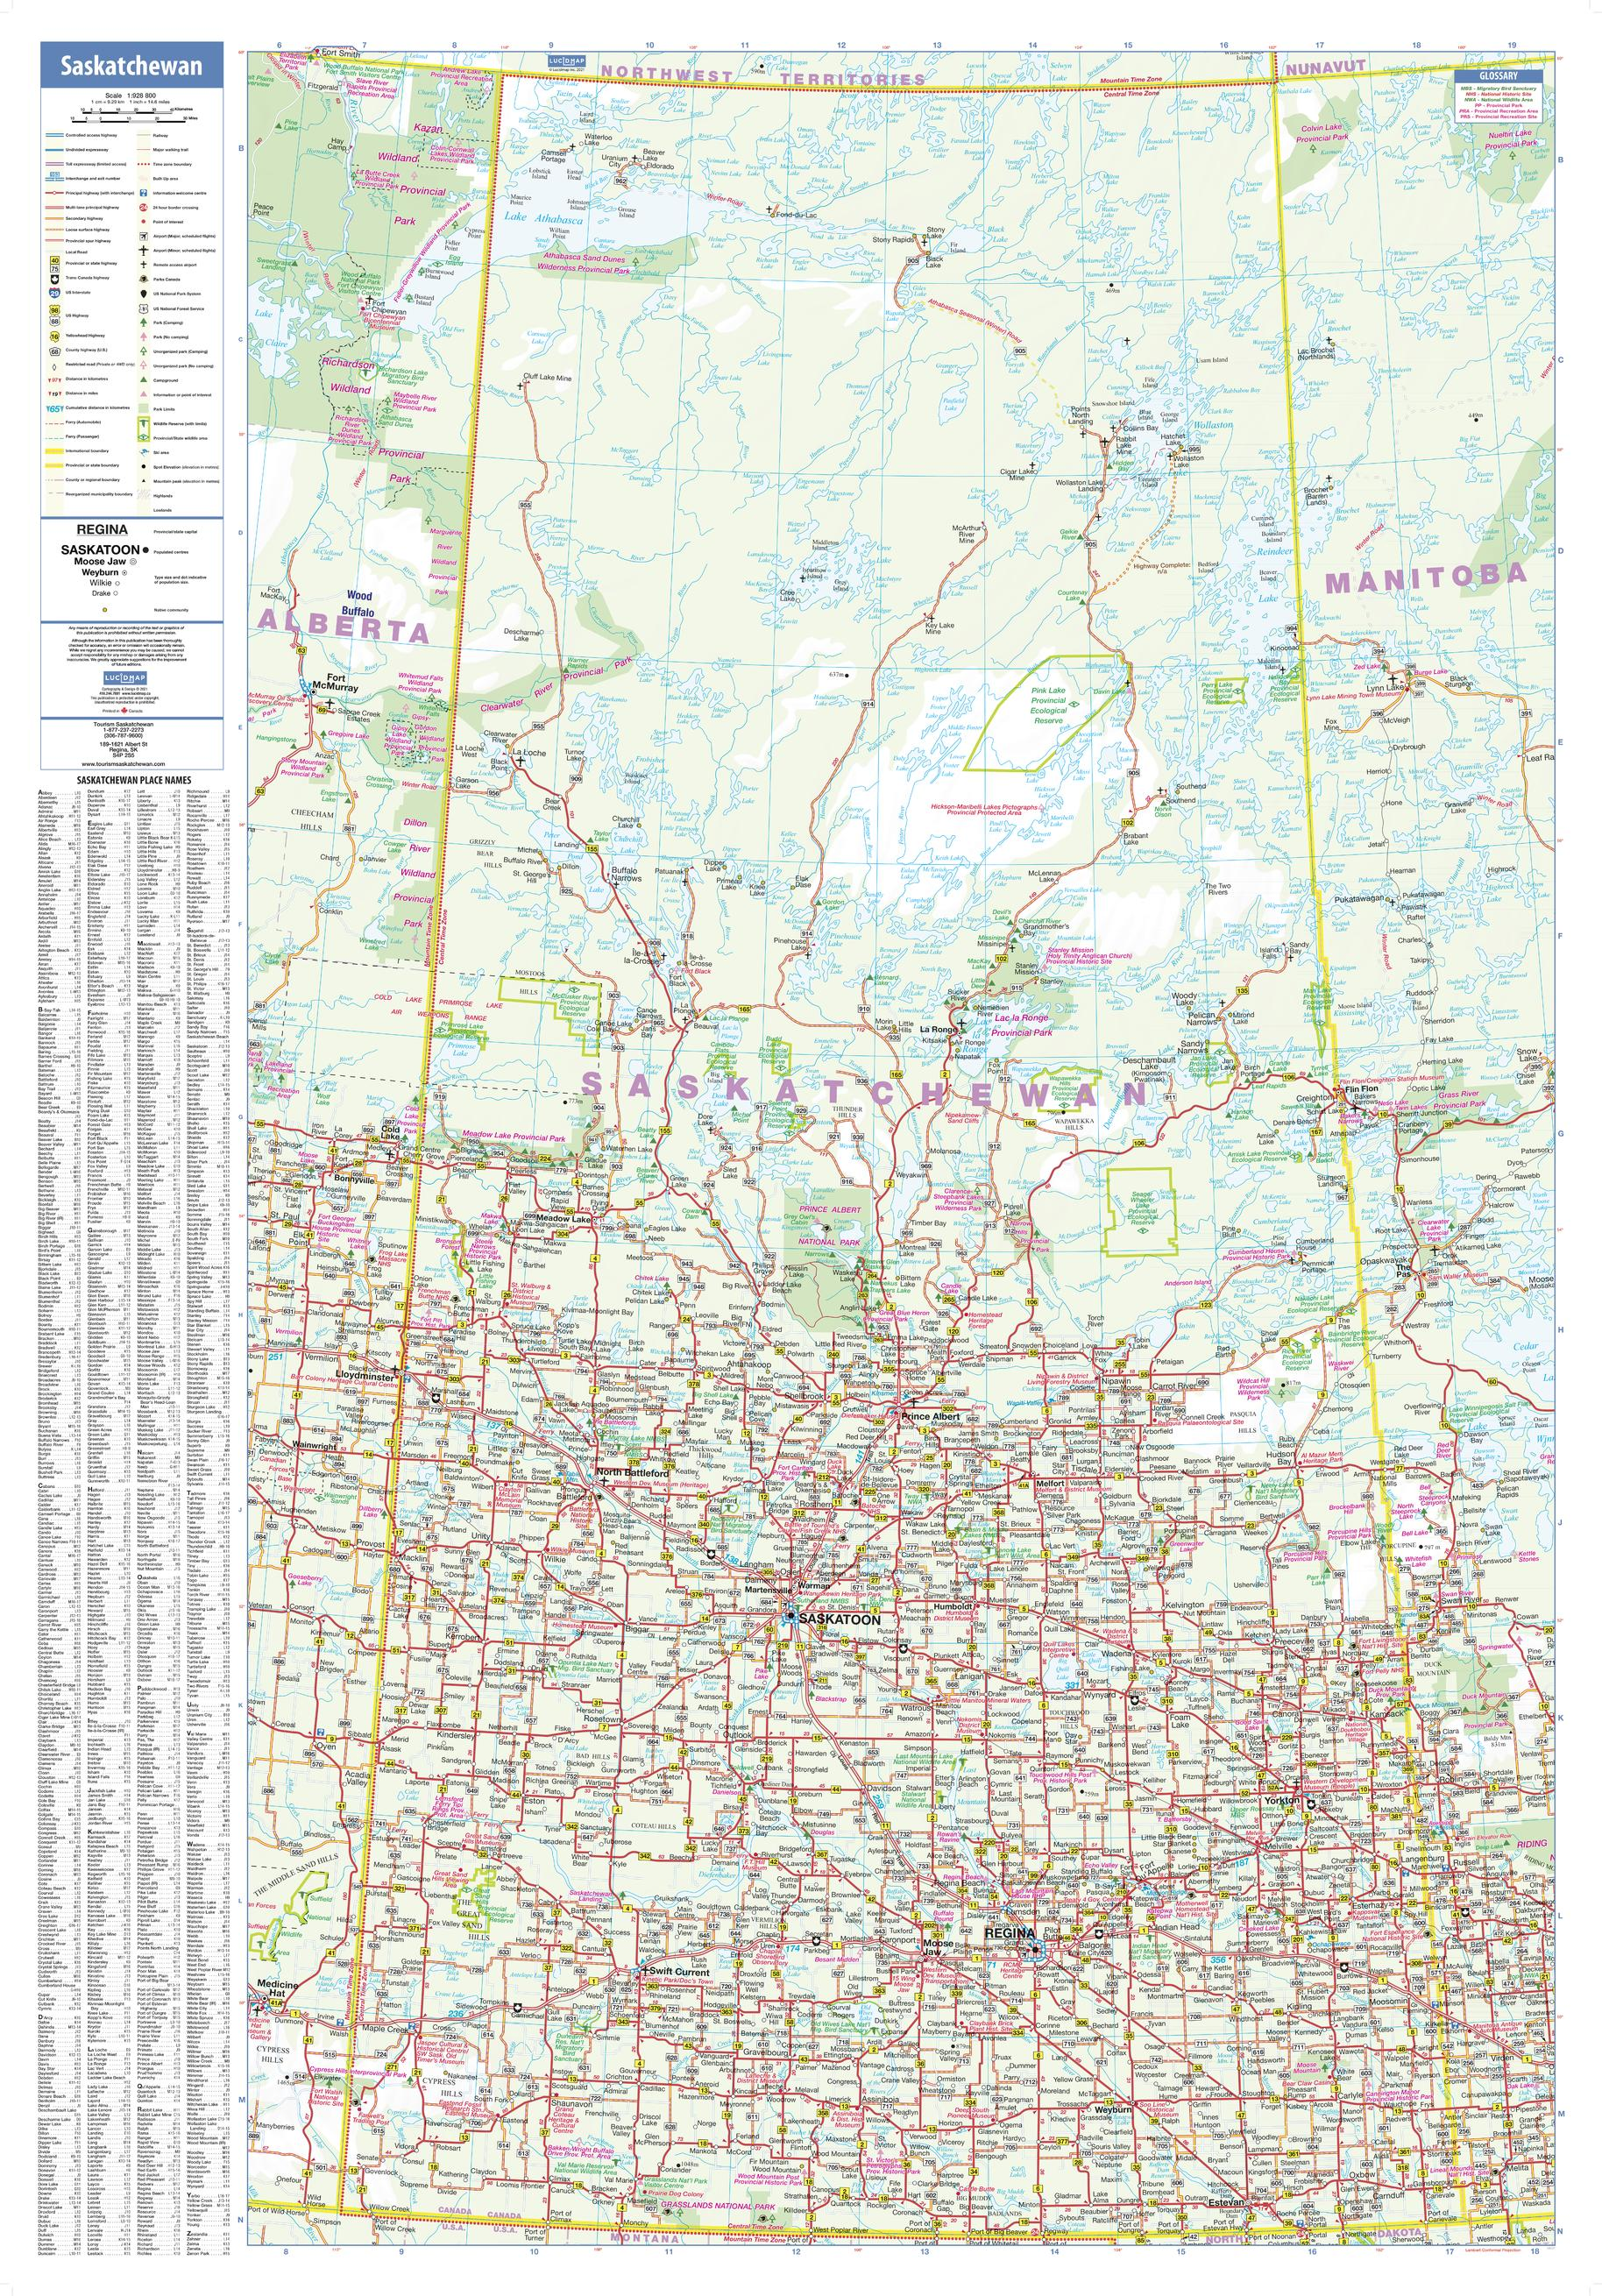 Saskatchewan Wall Map - large